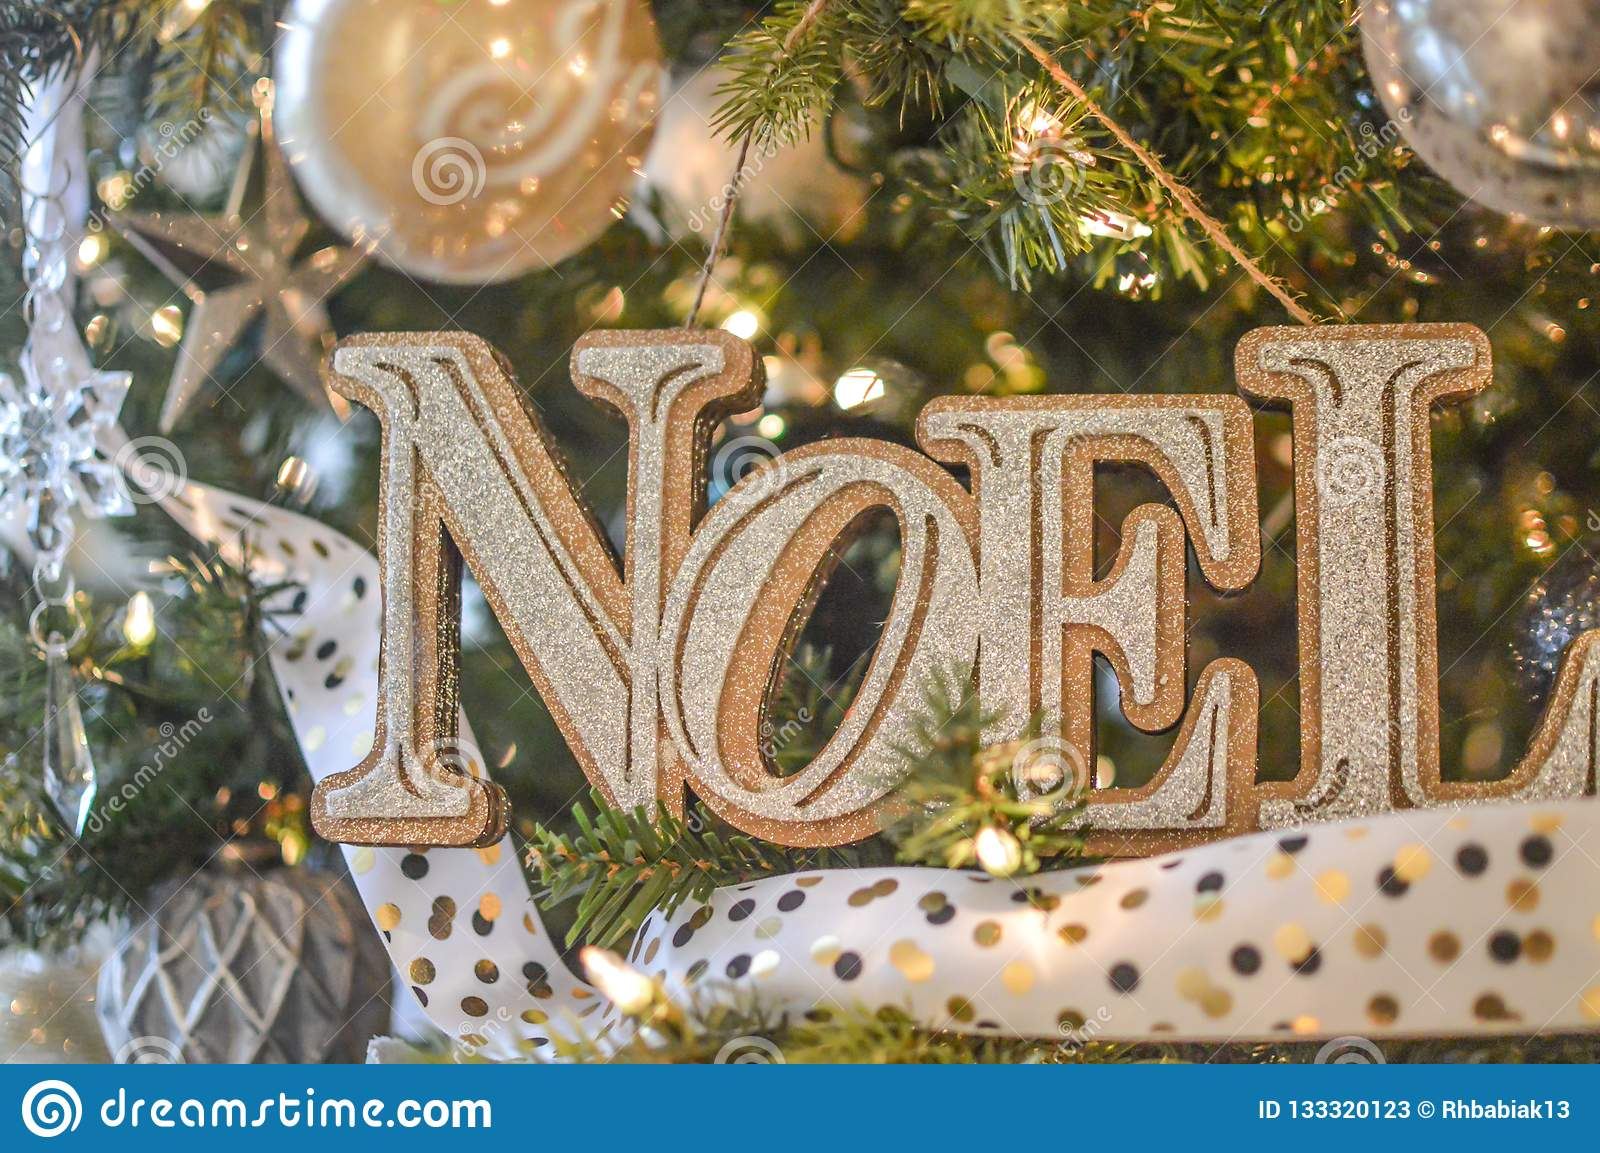 Noel Gold Christmas Tree Ornament Stock Image Image Of Merry Star 133320123